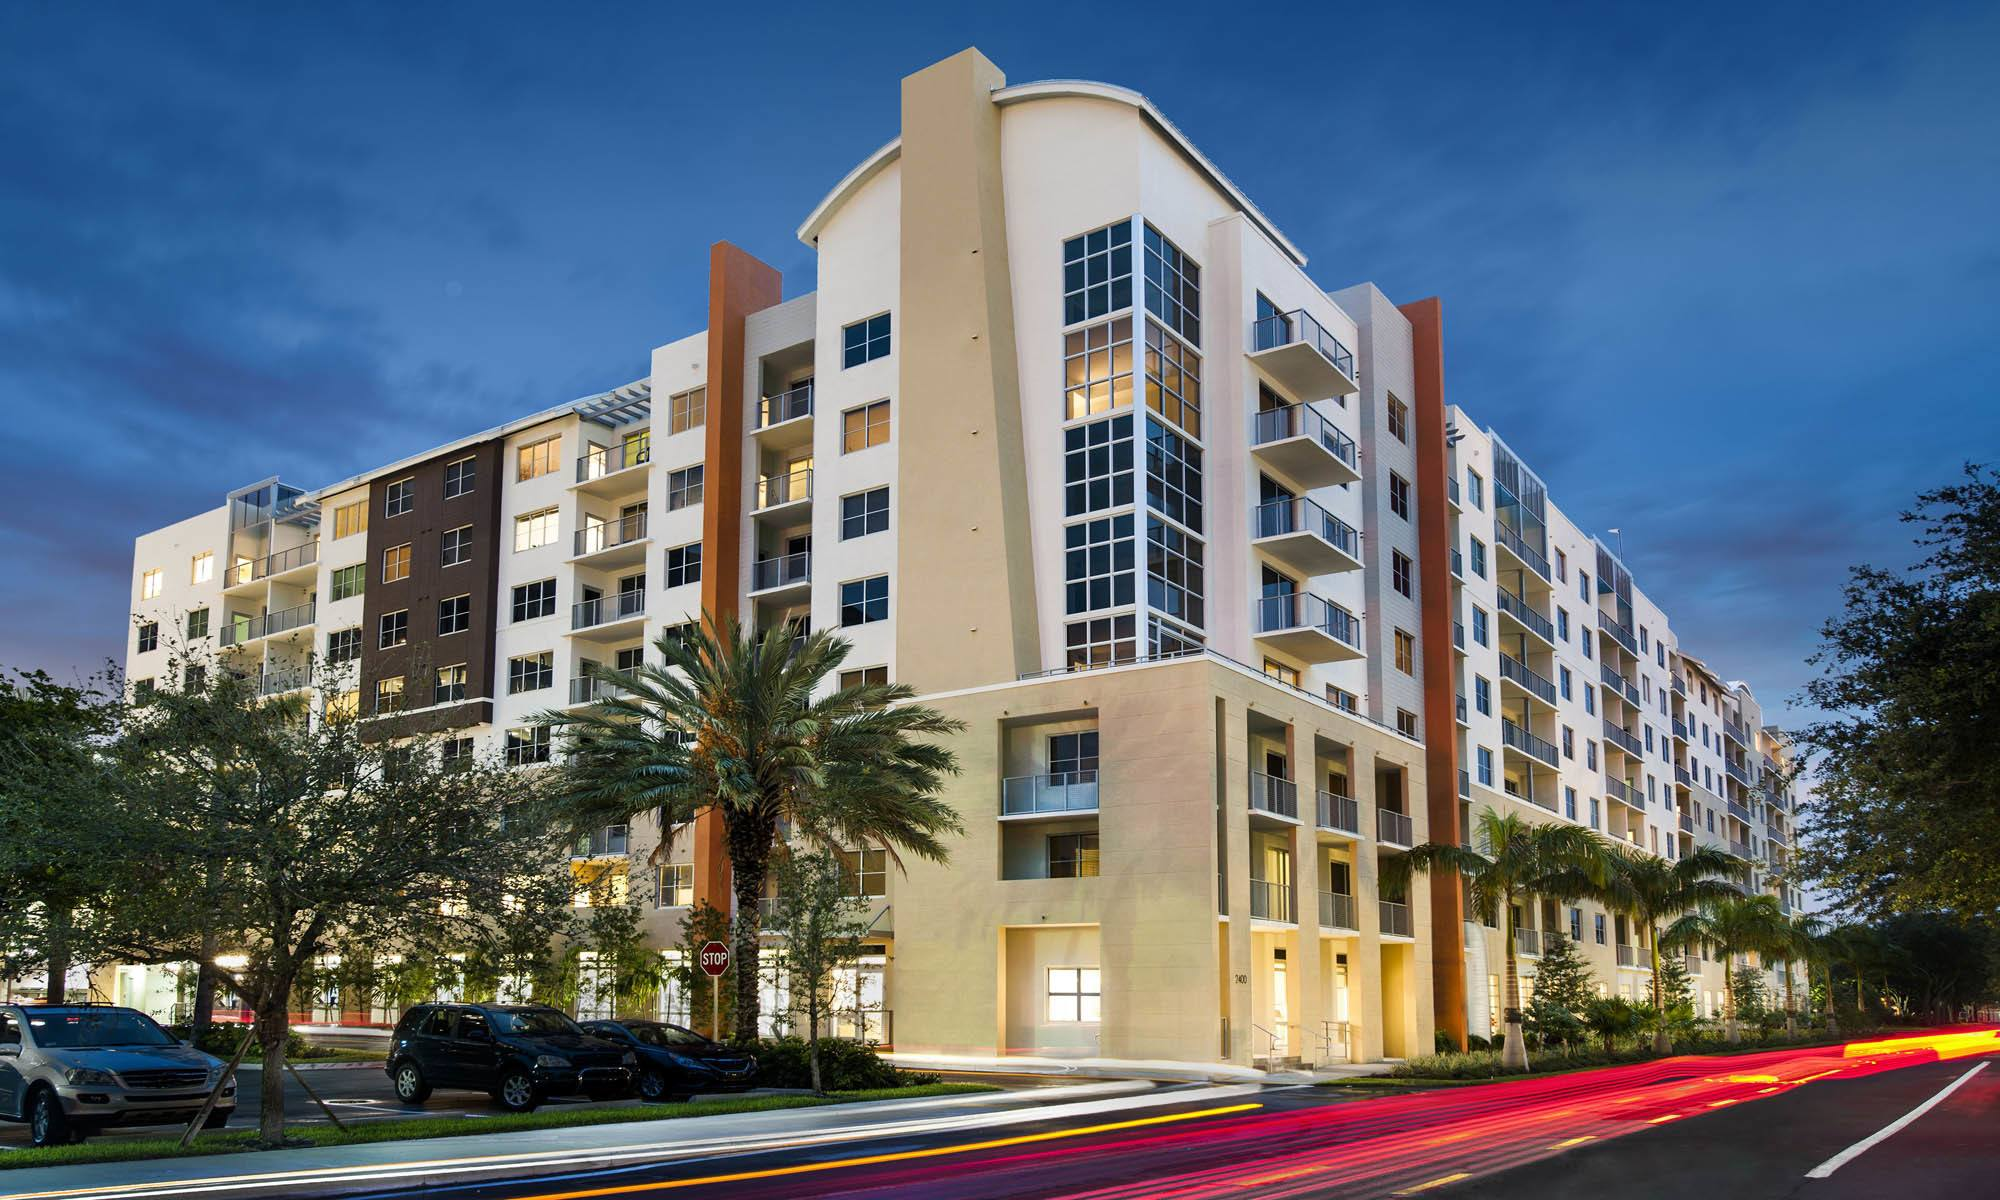 Ft lauderdale fl apartments for rent berkshire - 2 bedroom apartments in fort lauderdale ...